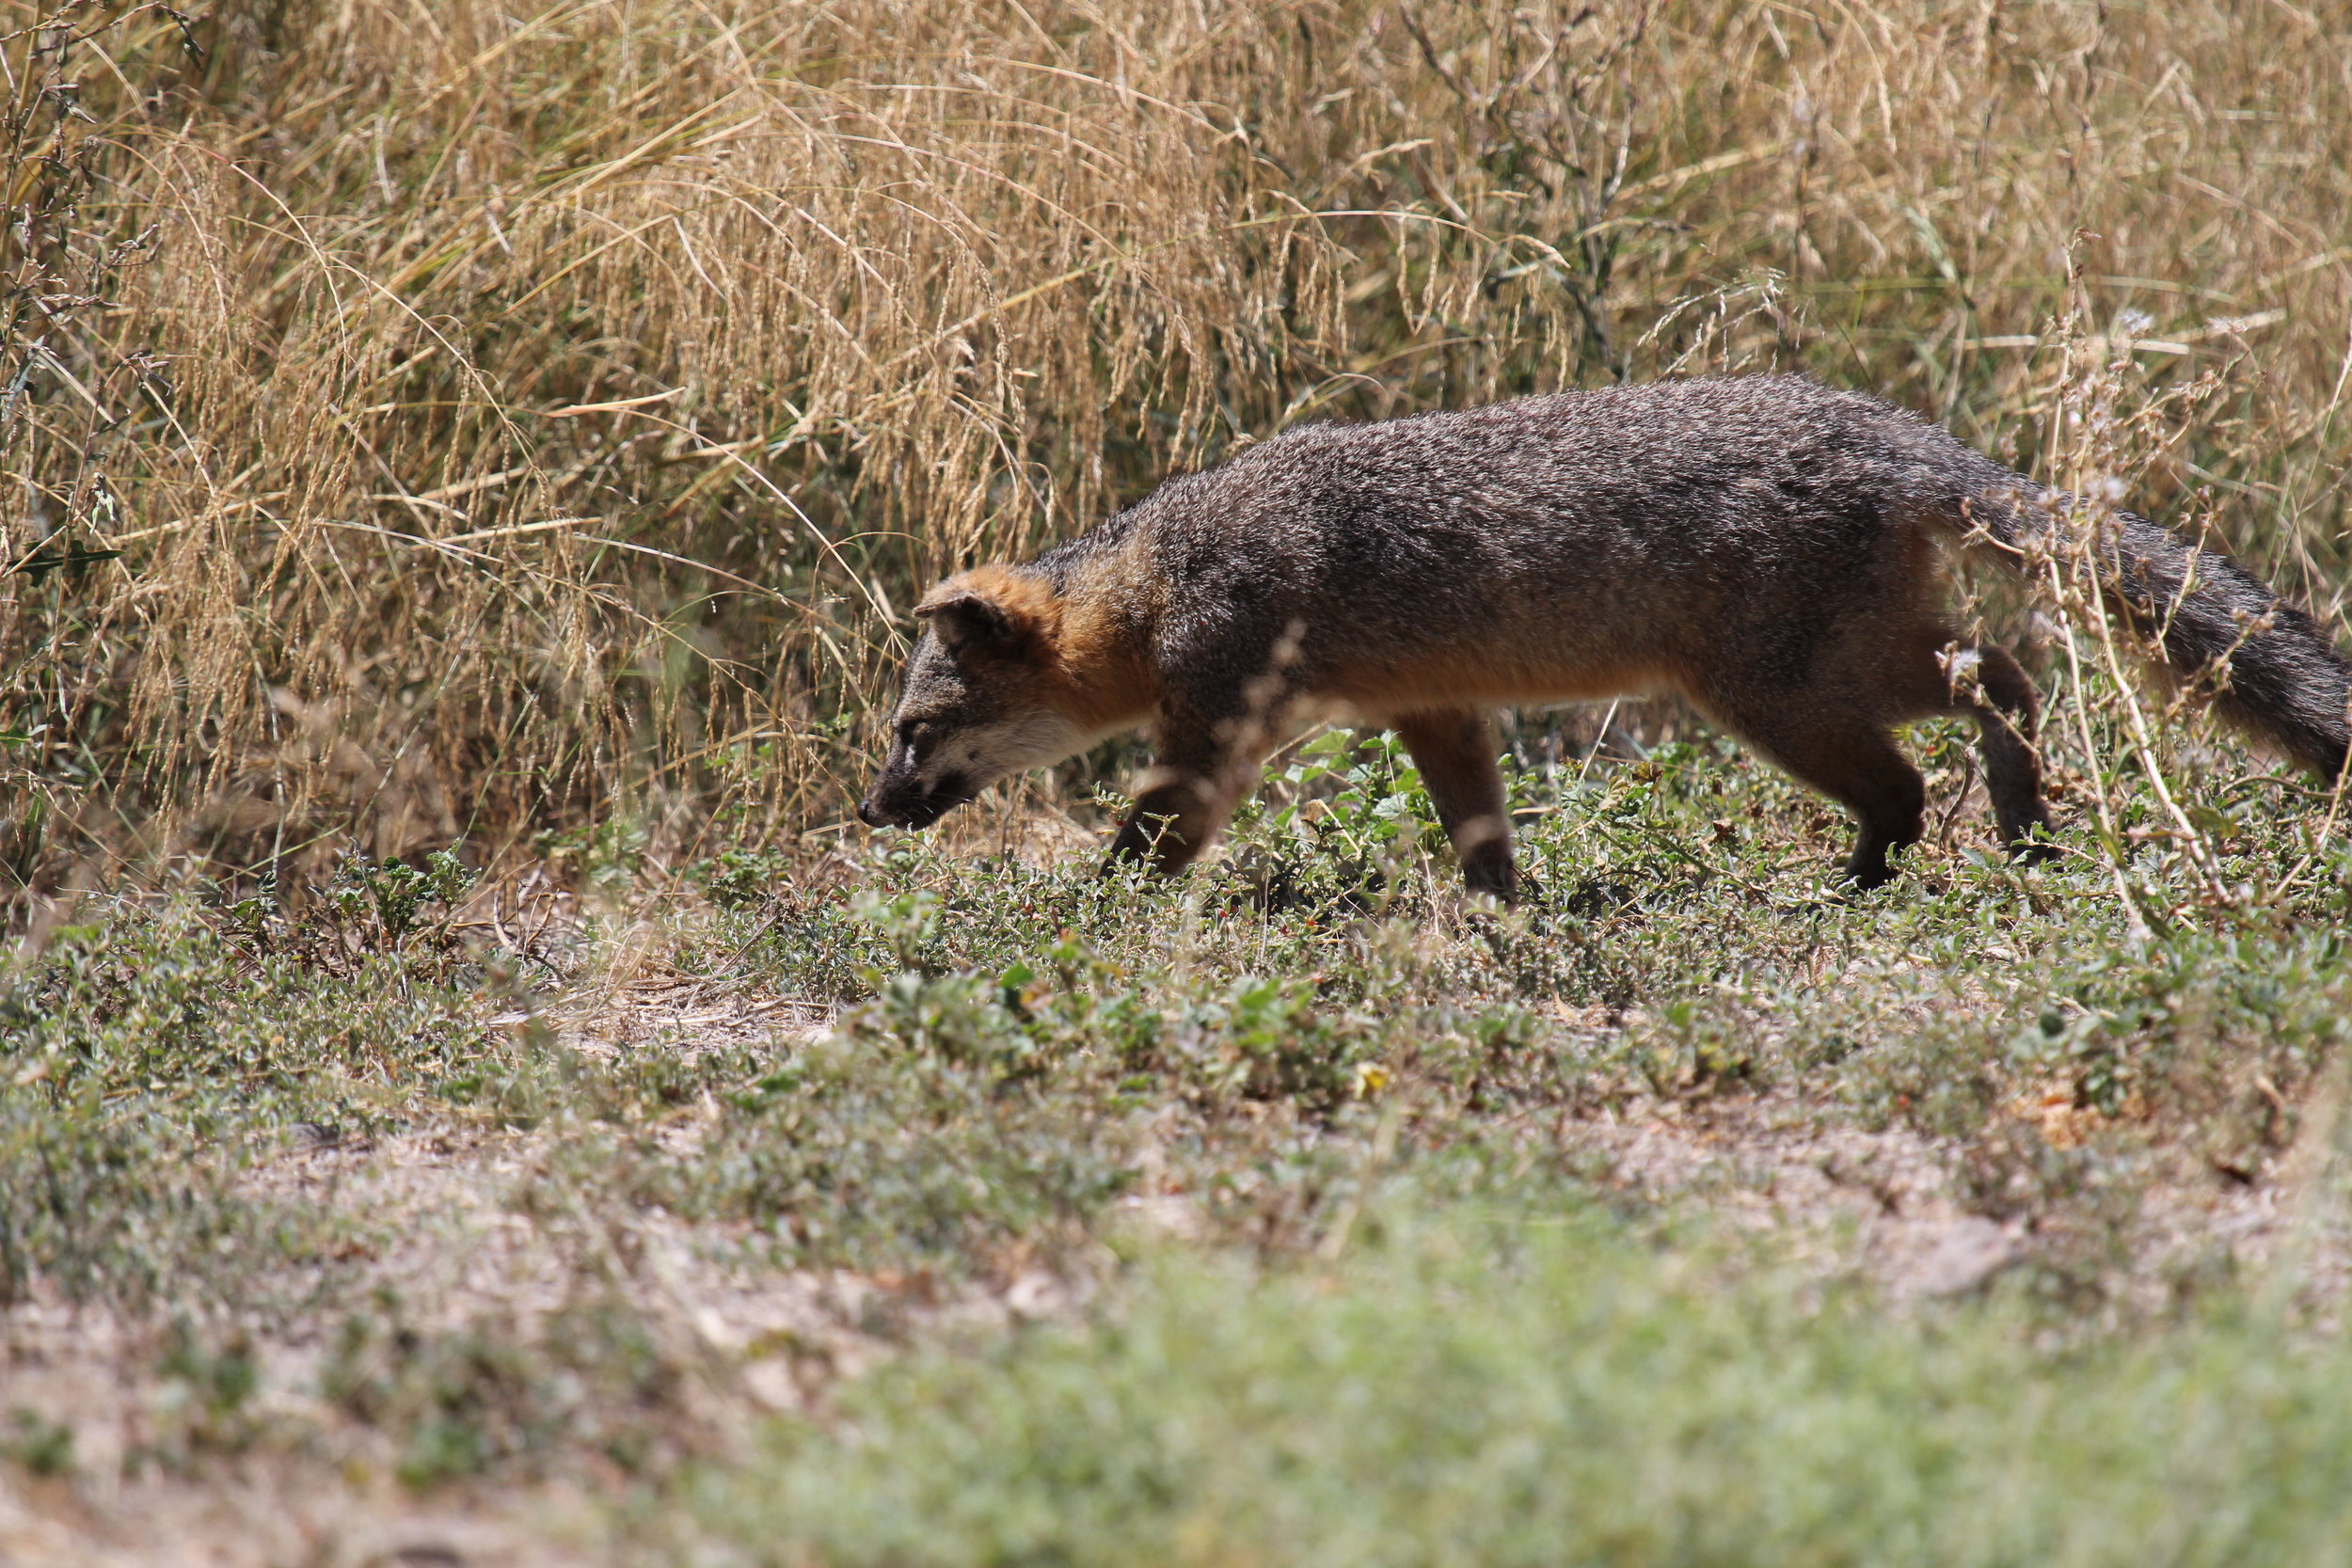 An Island Fox  ( Urocyon littoralis )  roaming Santa Cruz Island. Island Fox are an example of the unique and exceptional biodiversity of the Channel Islands. Peter's project will add information to aid in the conservation of the islands (and mainland coastal zones).